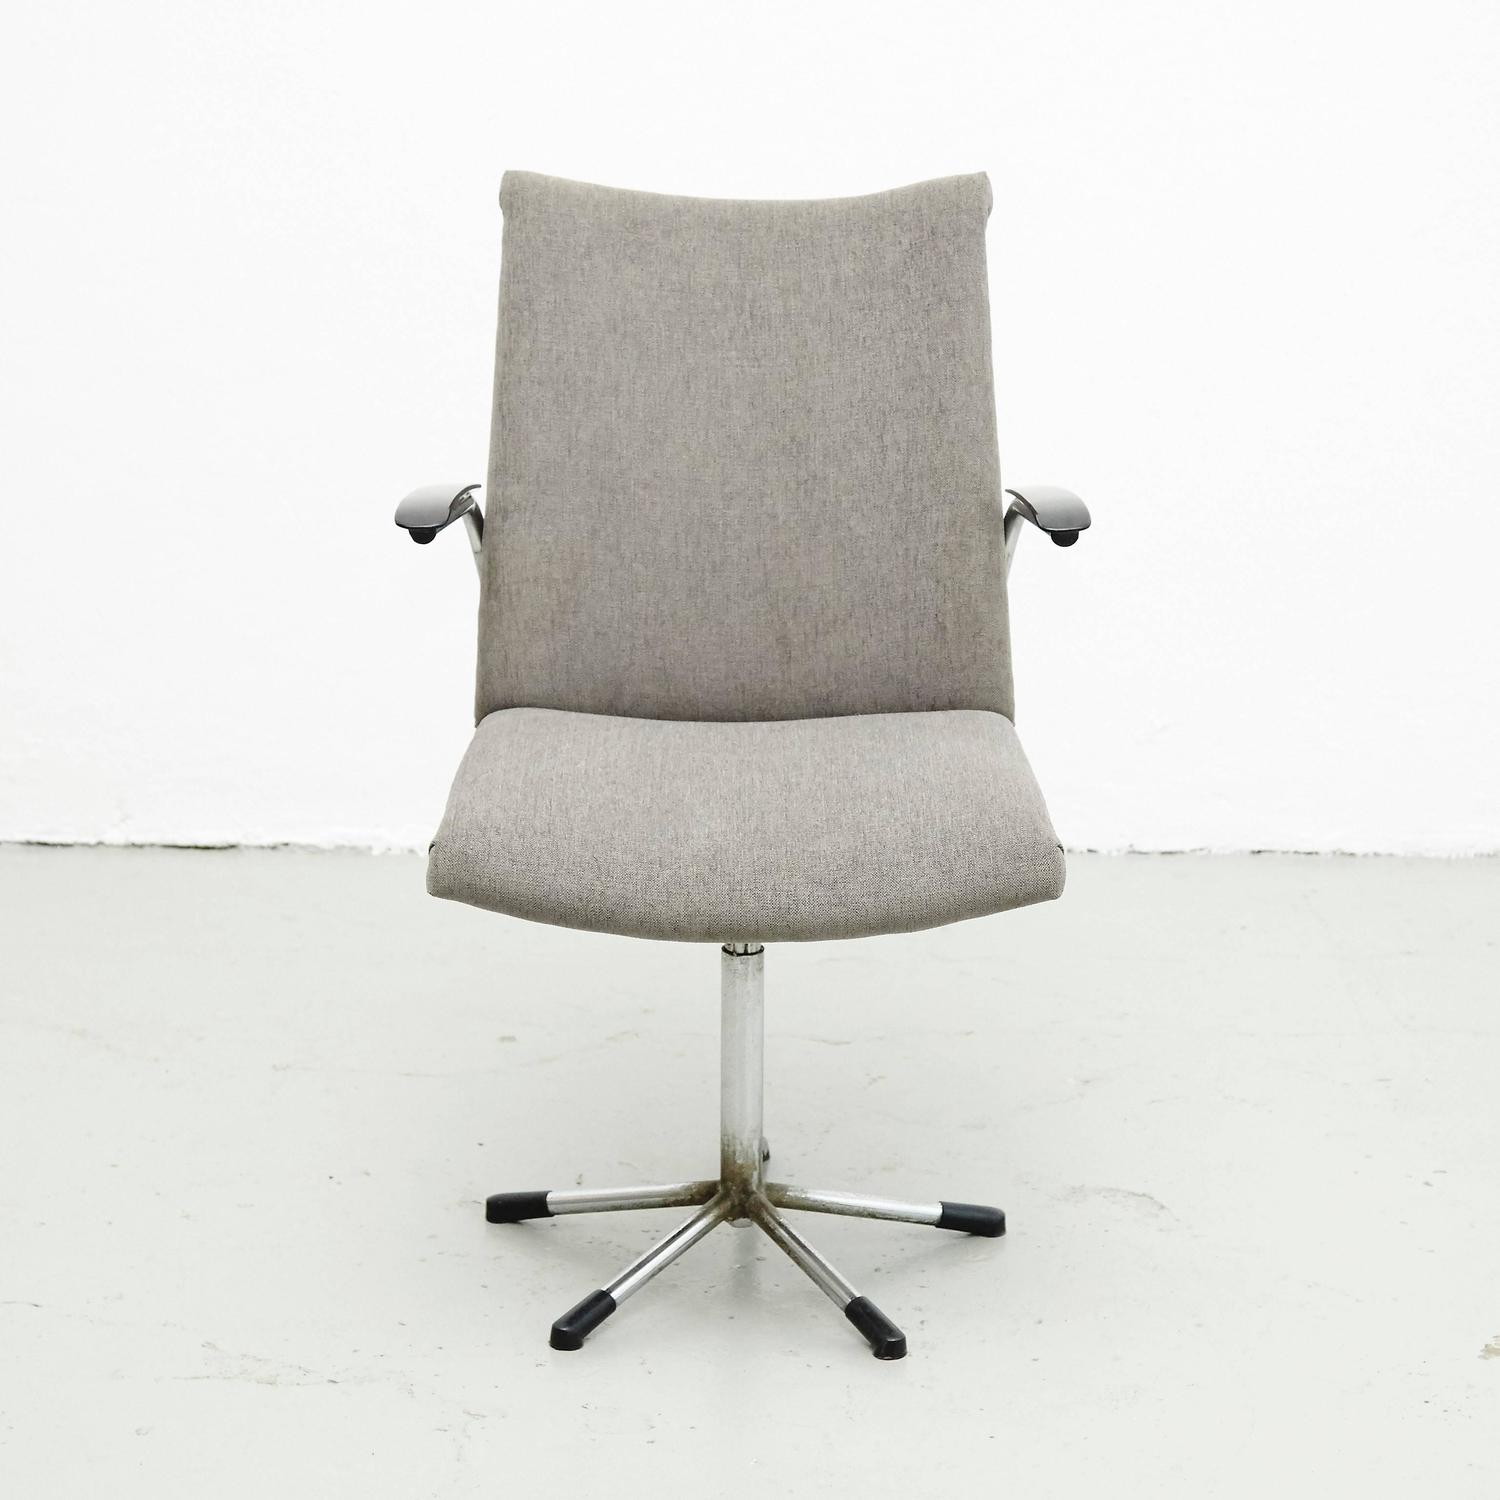 Martin De Wit Chairs for De Wit Schiedam For Sale at 1stdibs